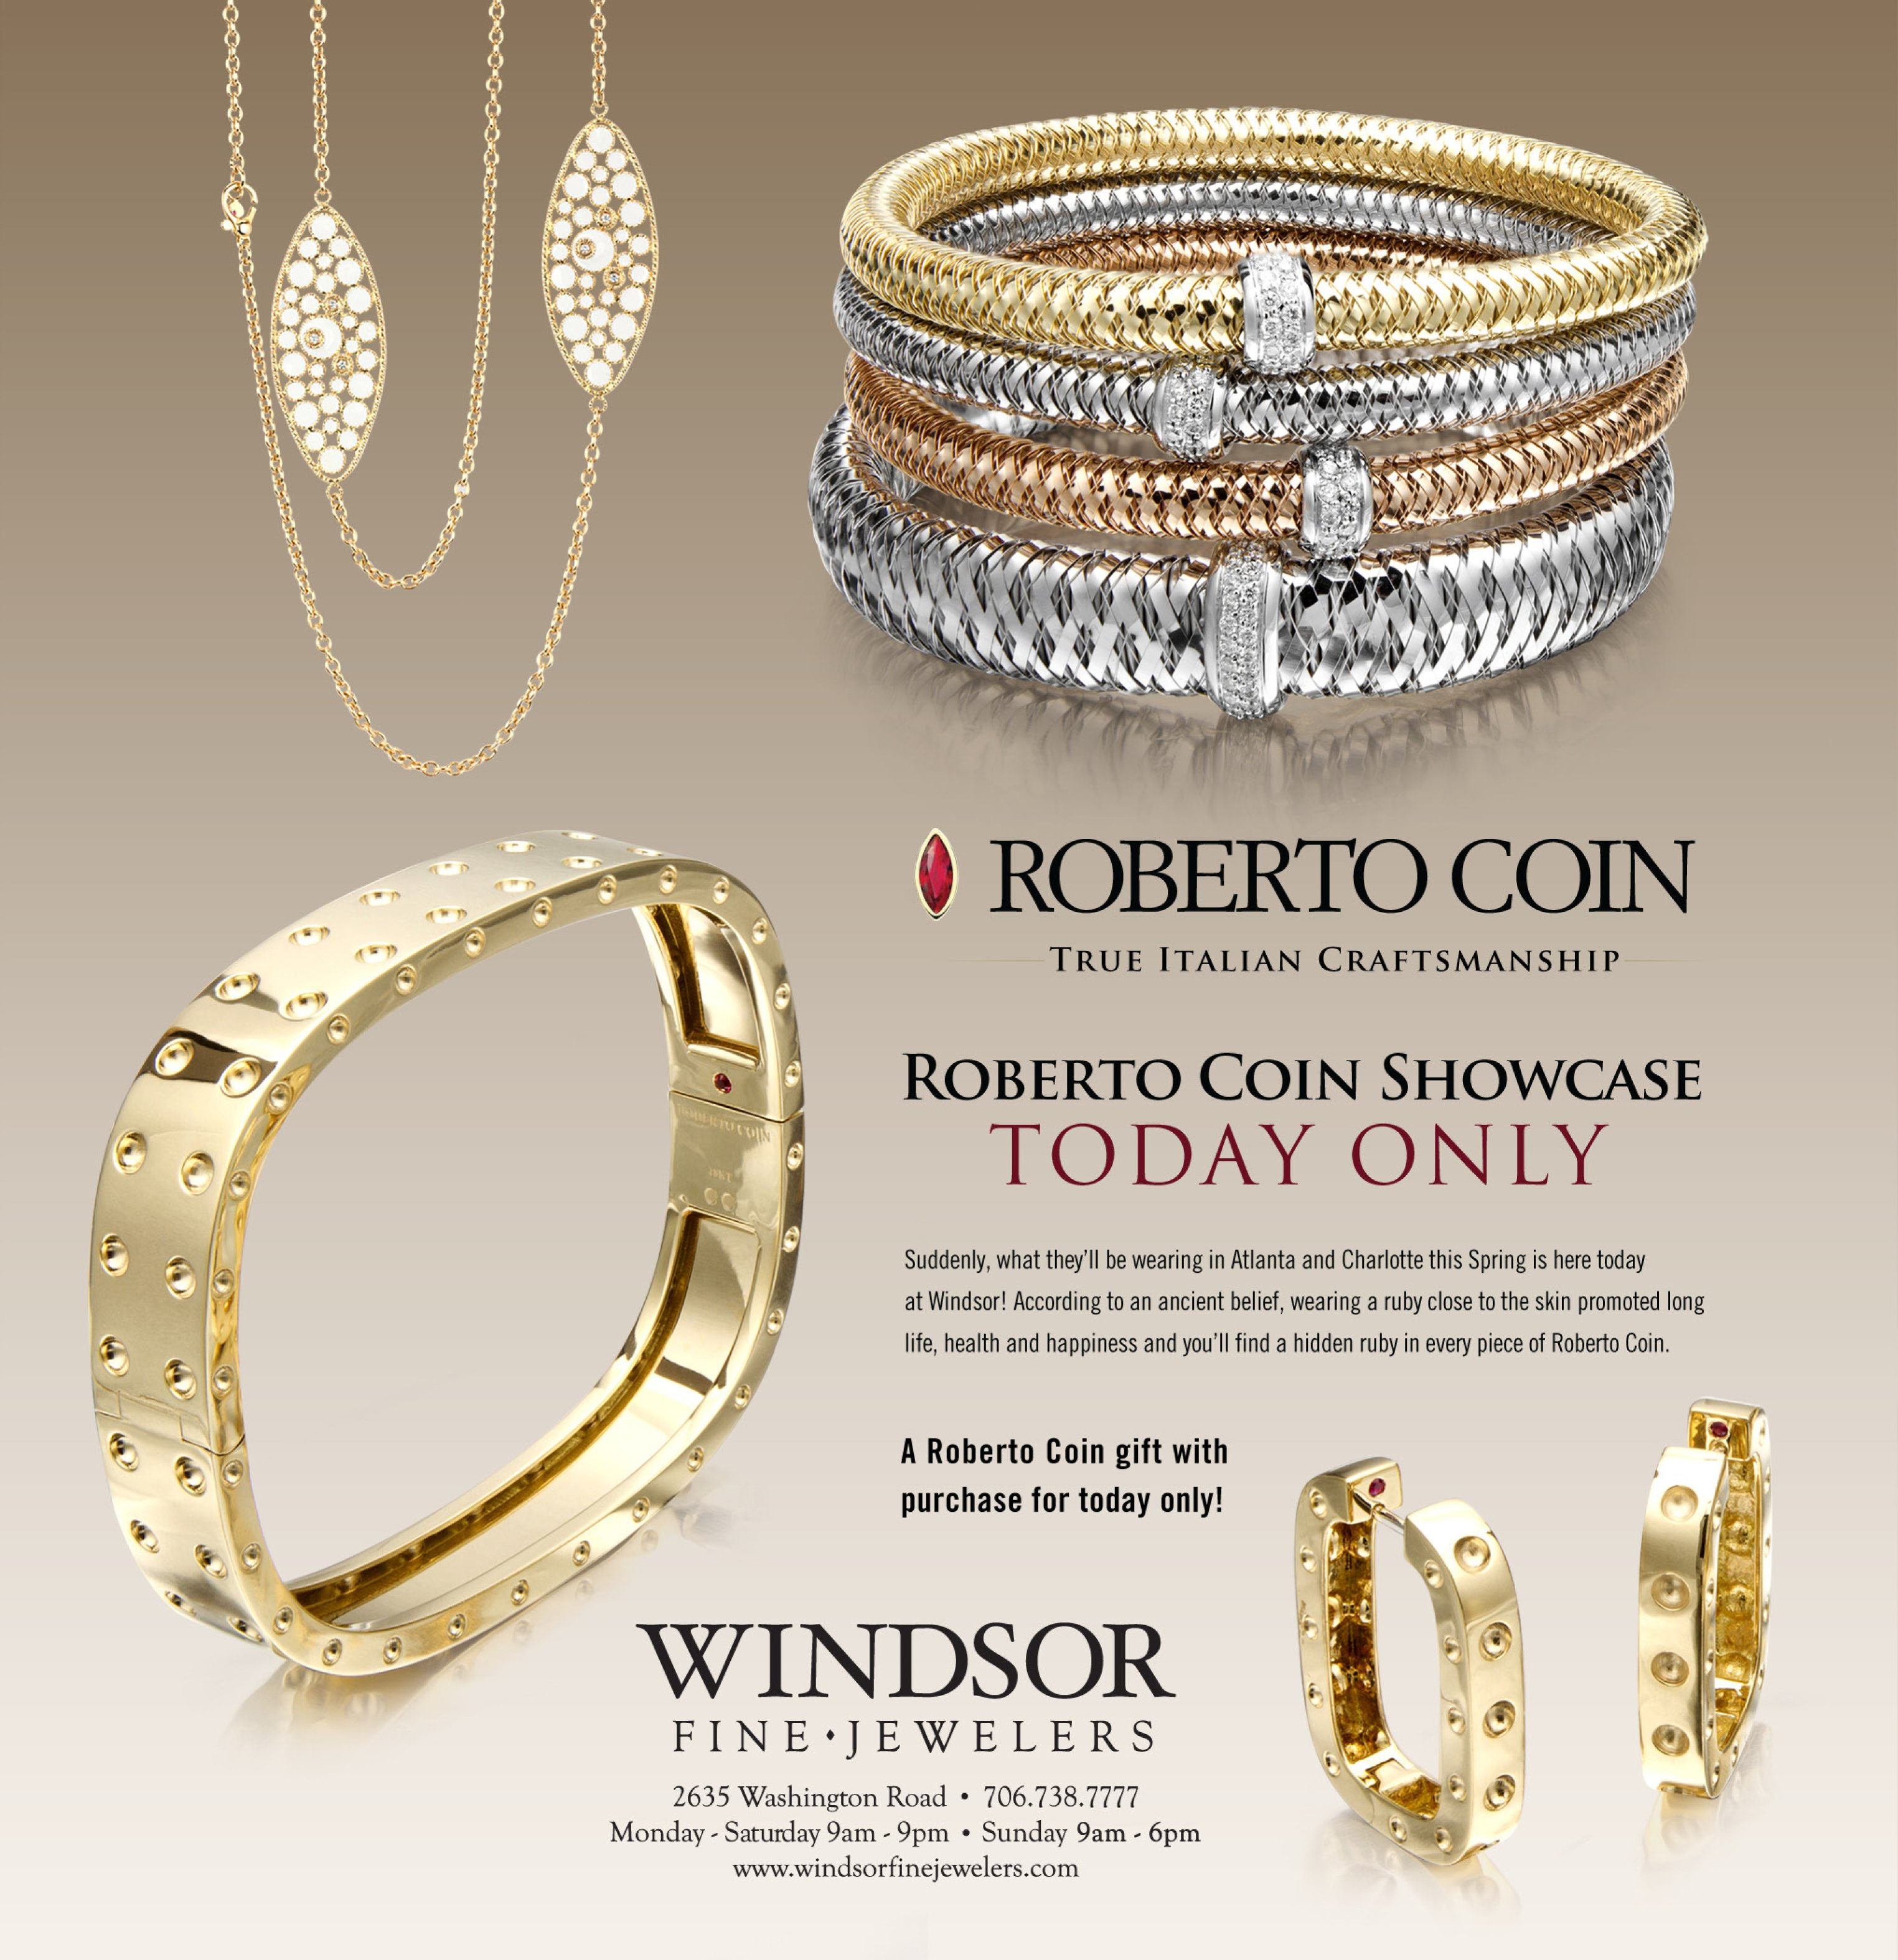 2014 December Windsor Fine Jewelers